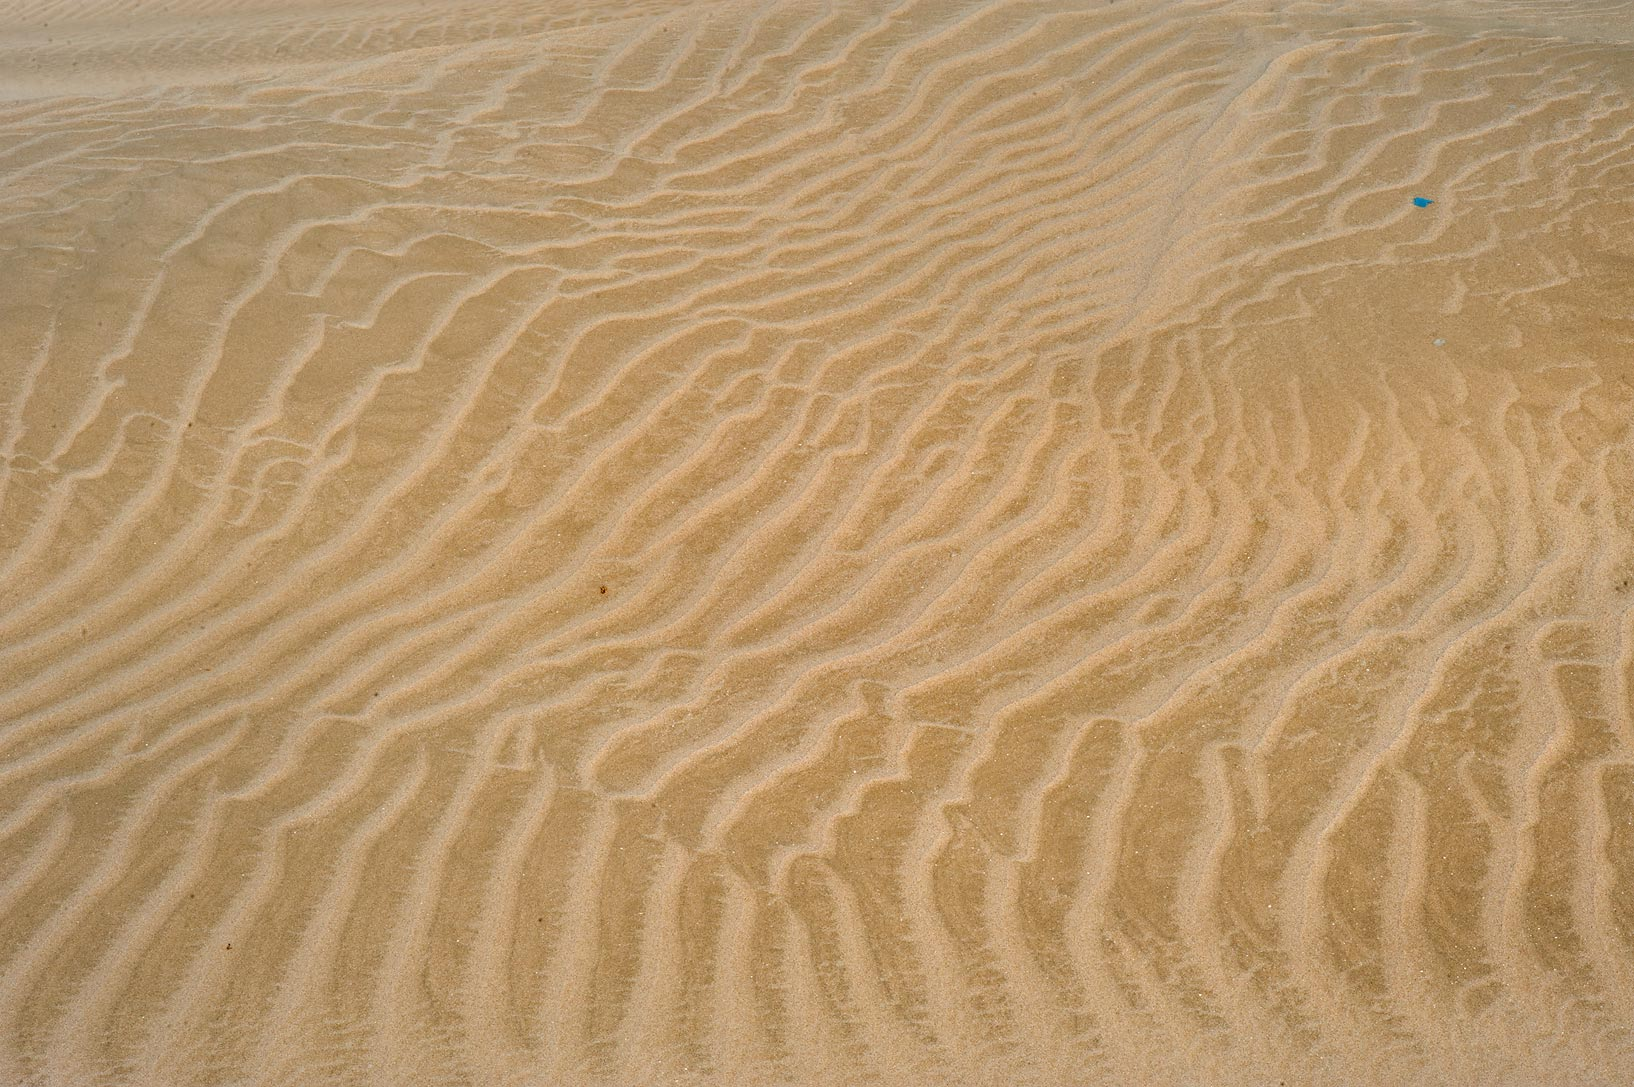 Sand ripples near Sealine Beach Resort near Mesaieed. Southern Qatar